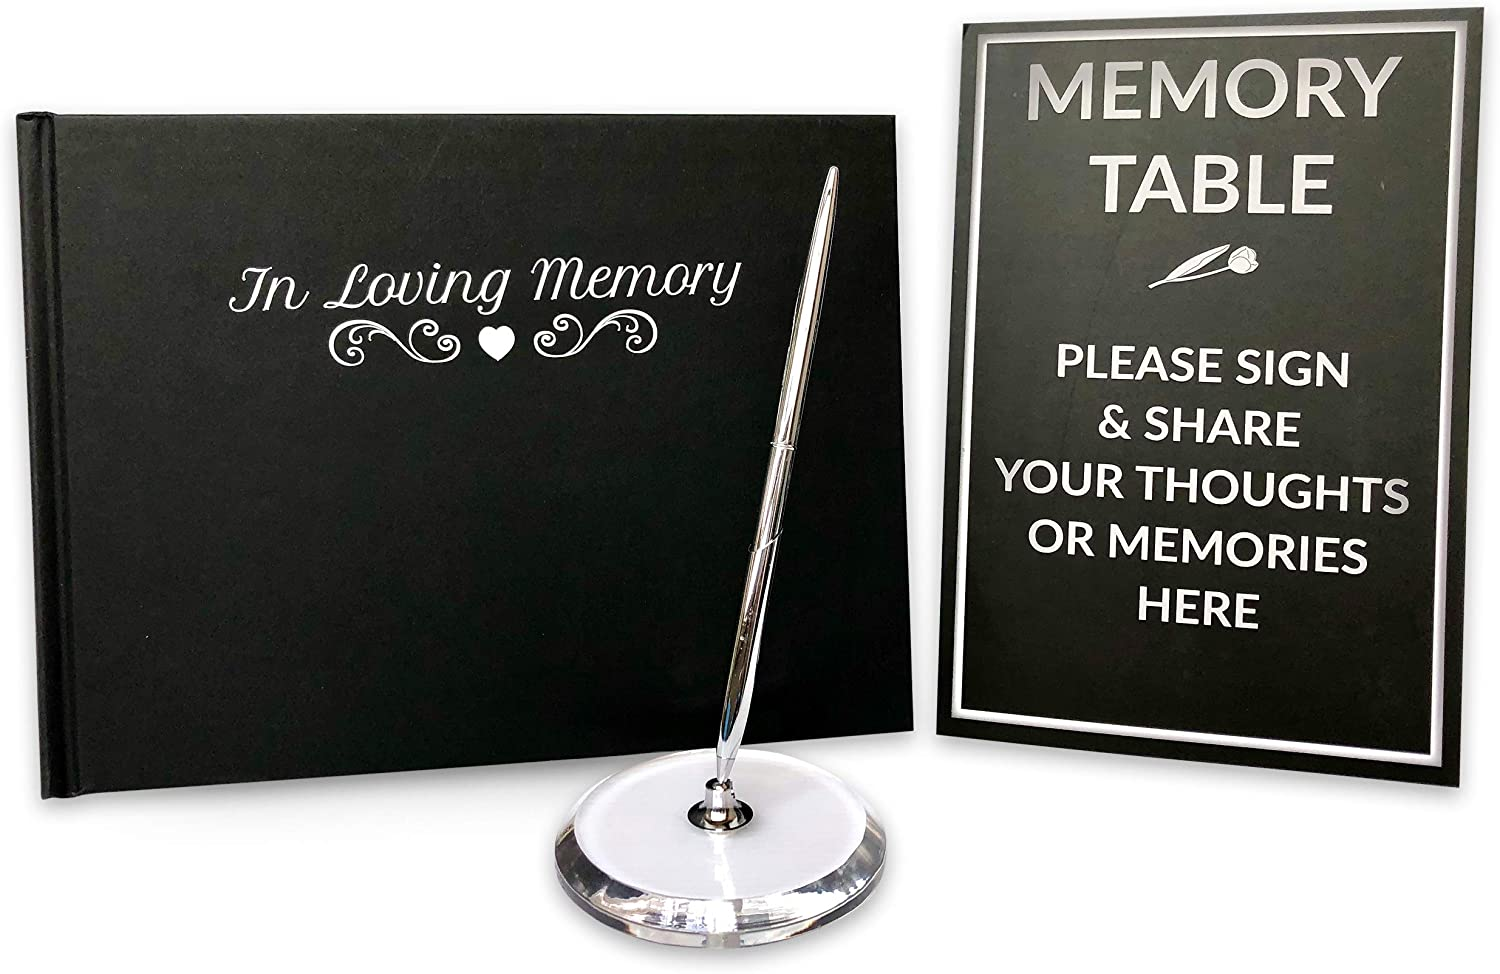 Funeral Guest Book | Memorial Guest Book | Black Guest Book Hardcover for Funeral | Guestbook for Sign In, Condolence | In Loving Memory in Silver Foil | Silver Pen and Memory Table Card Sign Included